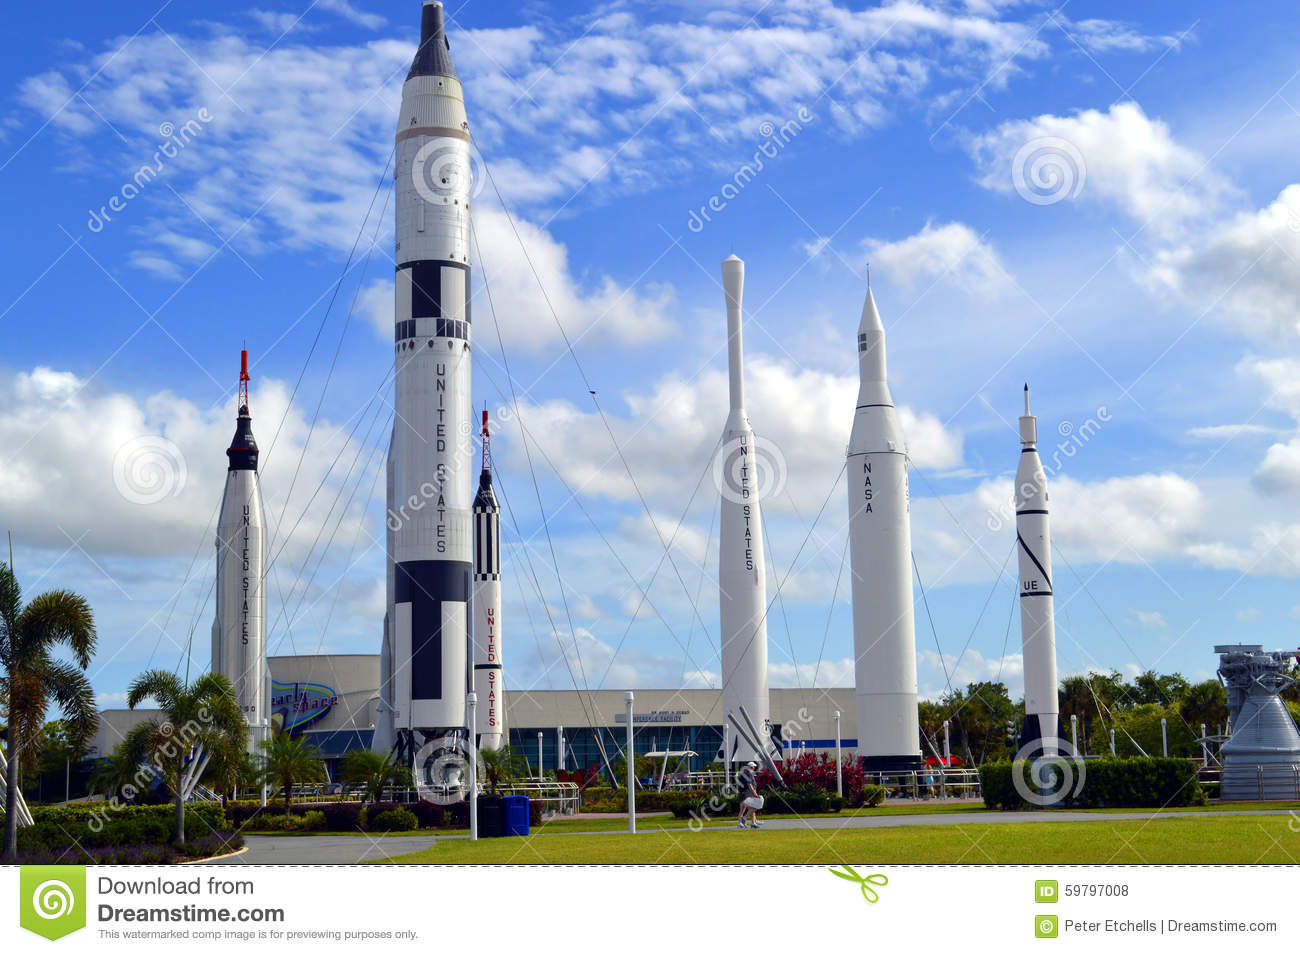 Apollo sobe rapidamente no displayin o jardim do foguete em Kennedy Space Center